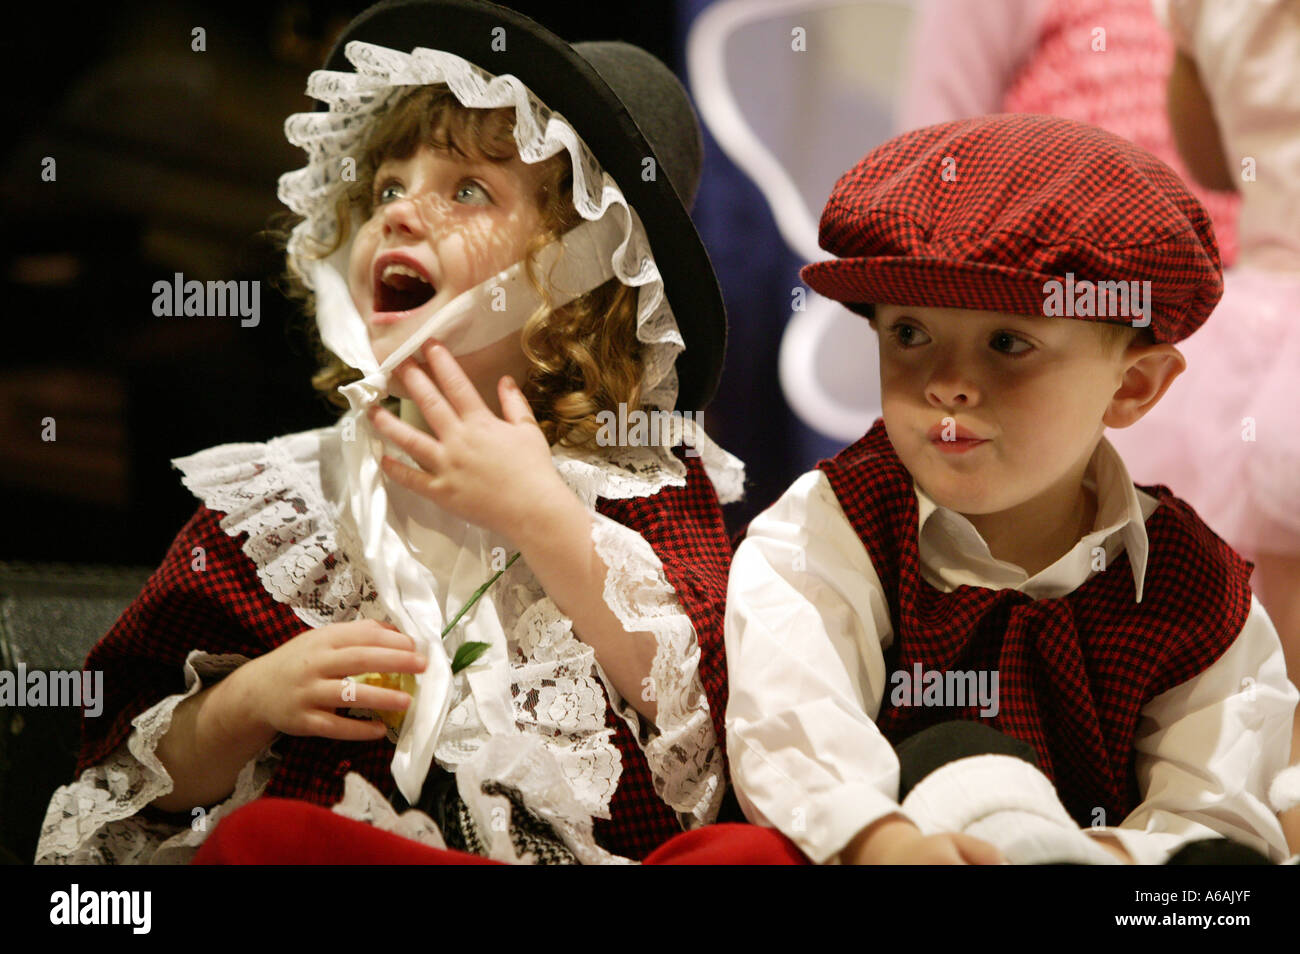 ee97b3b06 Two children dressed in traditional Welsh costume at the Eisteddfod  cultural festival in Bangor Wales -